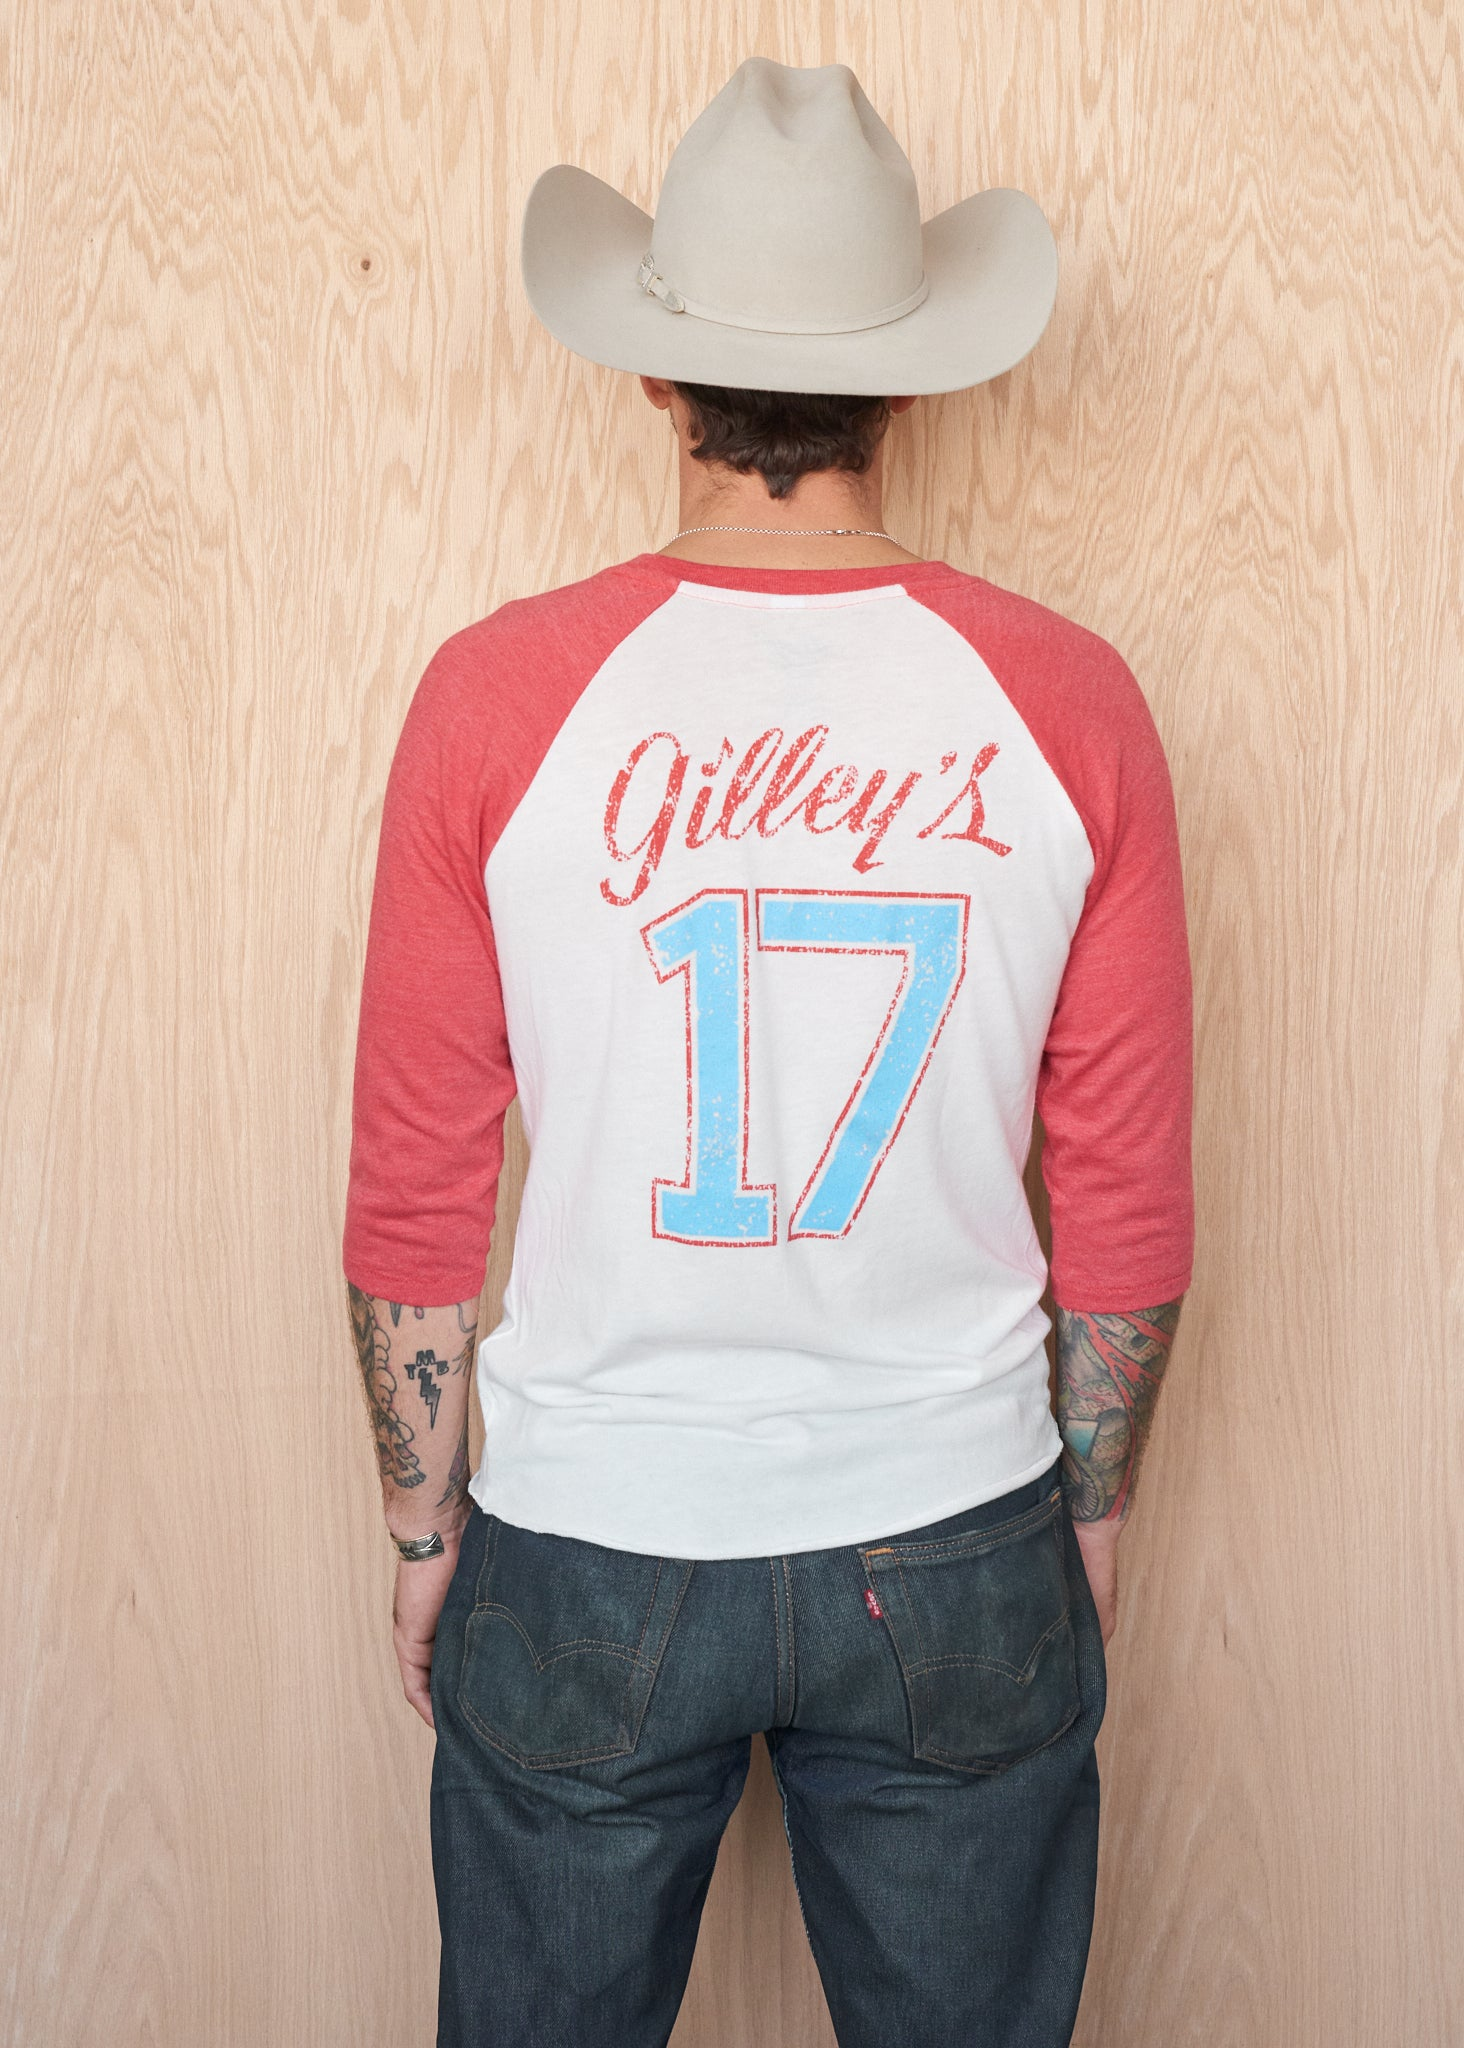 Gilley's #17 Baseball Tee - Baseball Tee - Midnight Rider